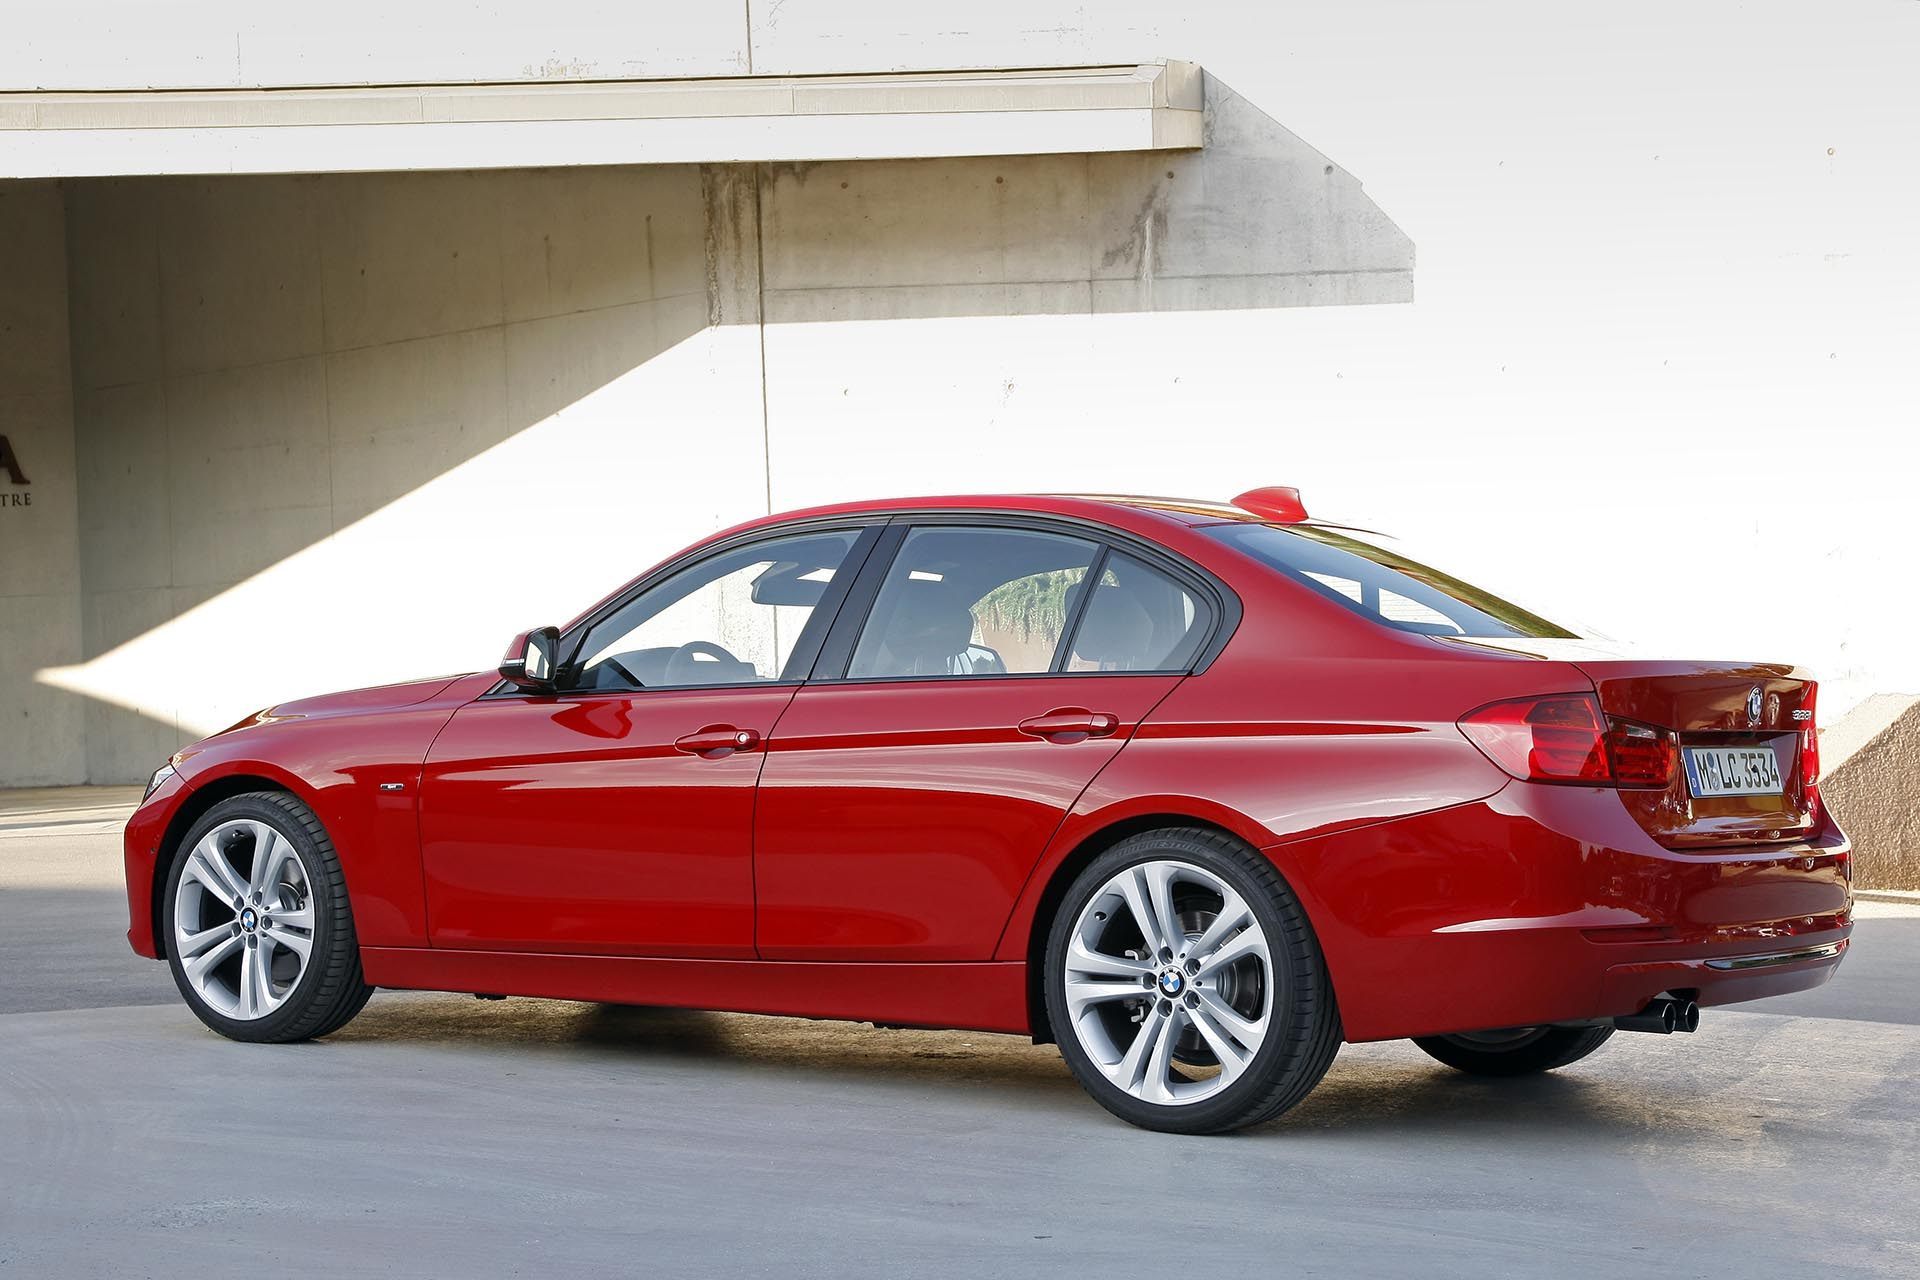 14_bmw f30 328i xdrive rear profile